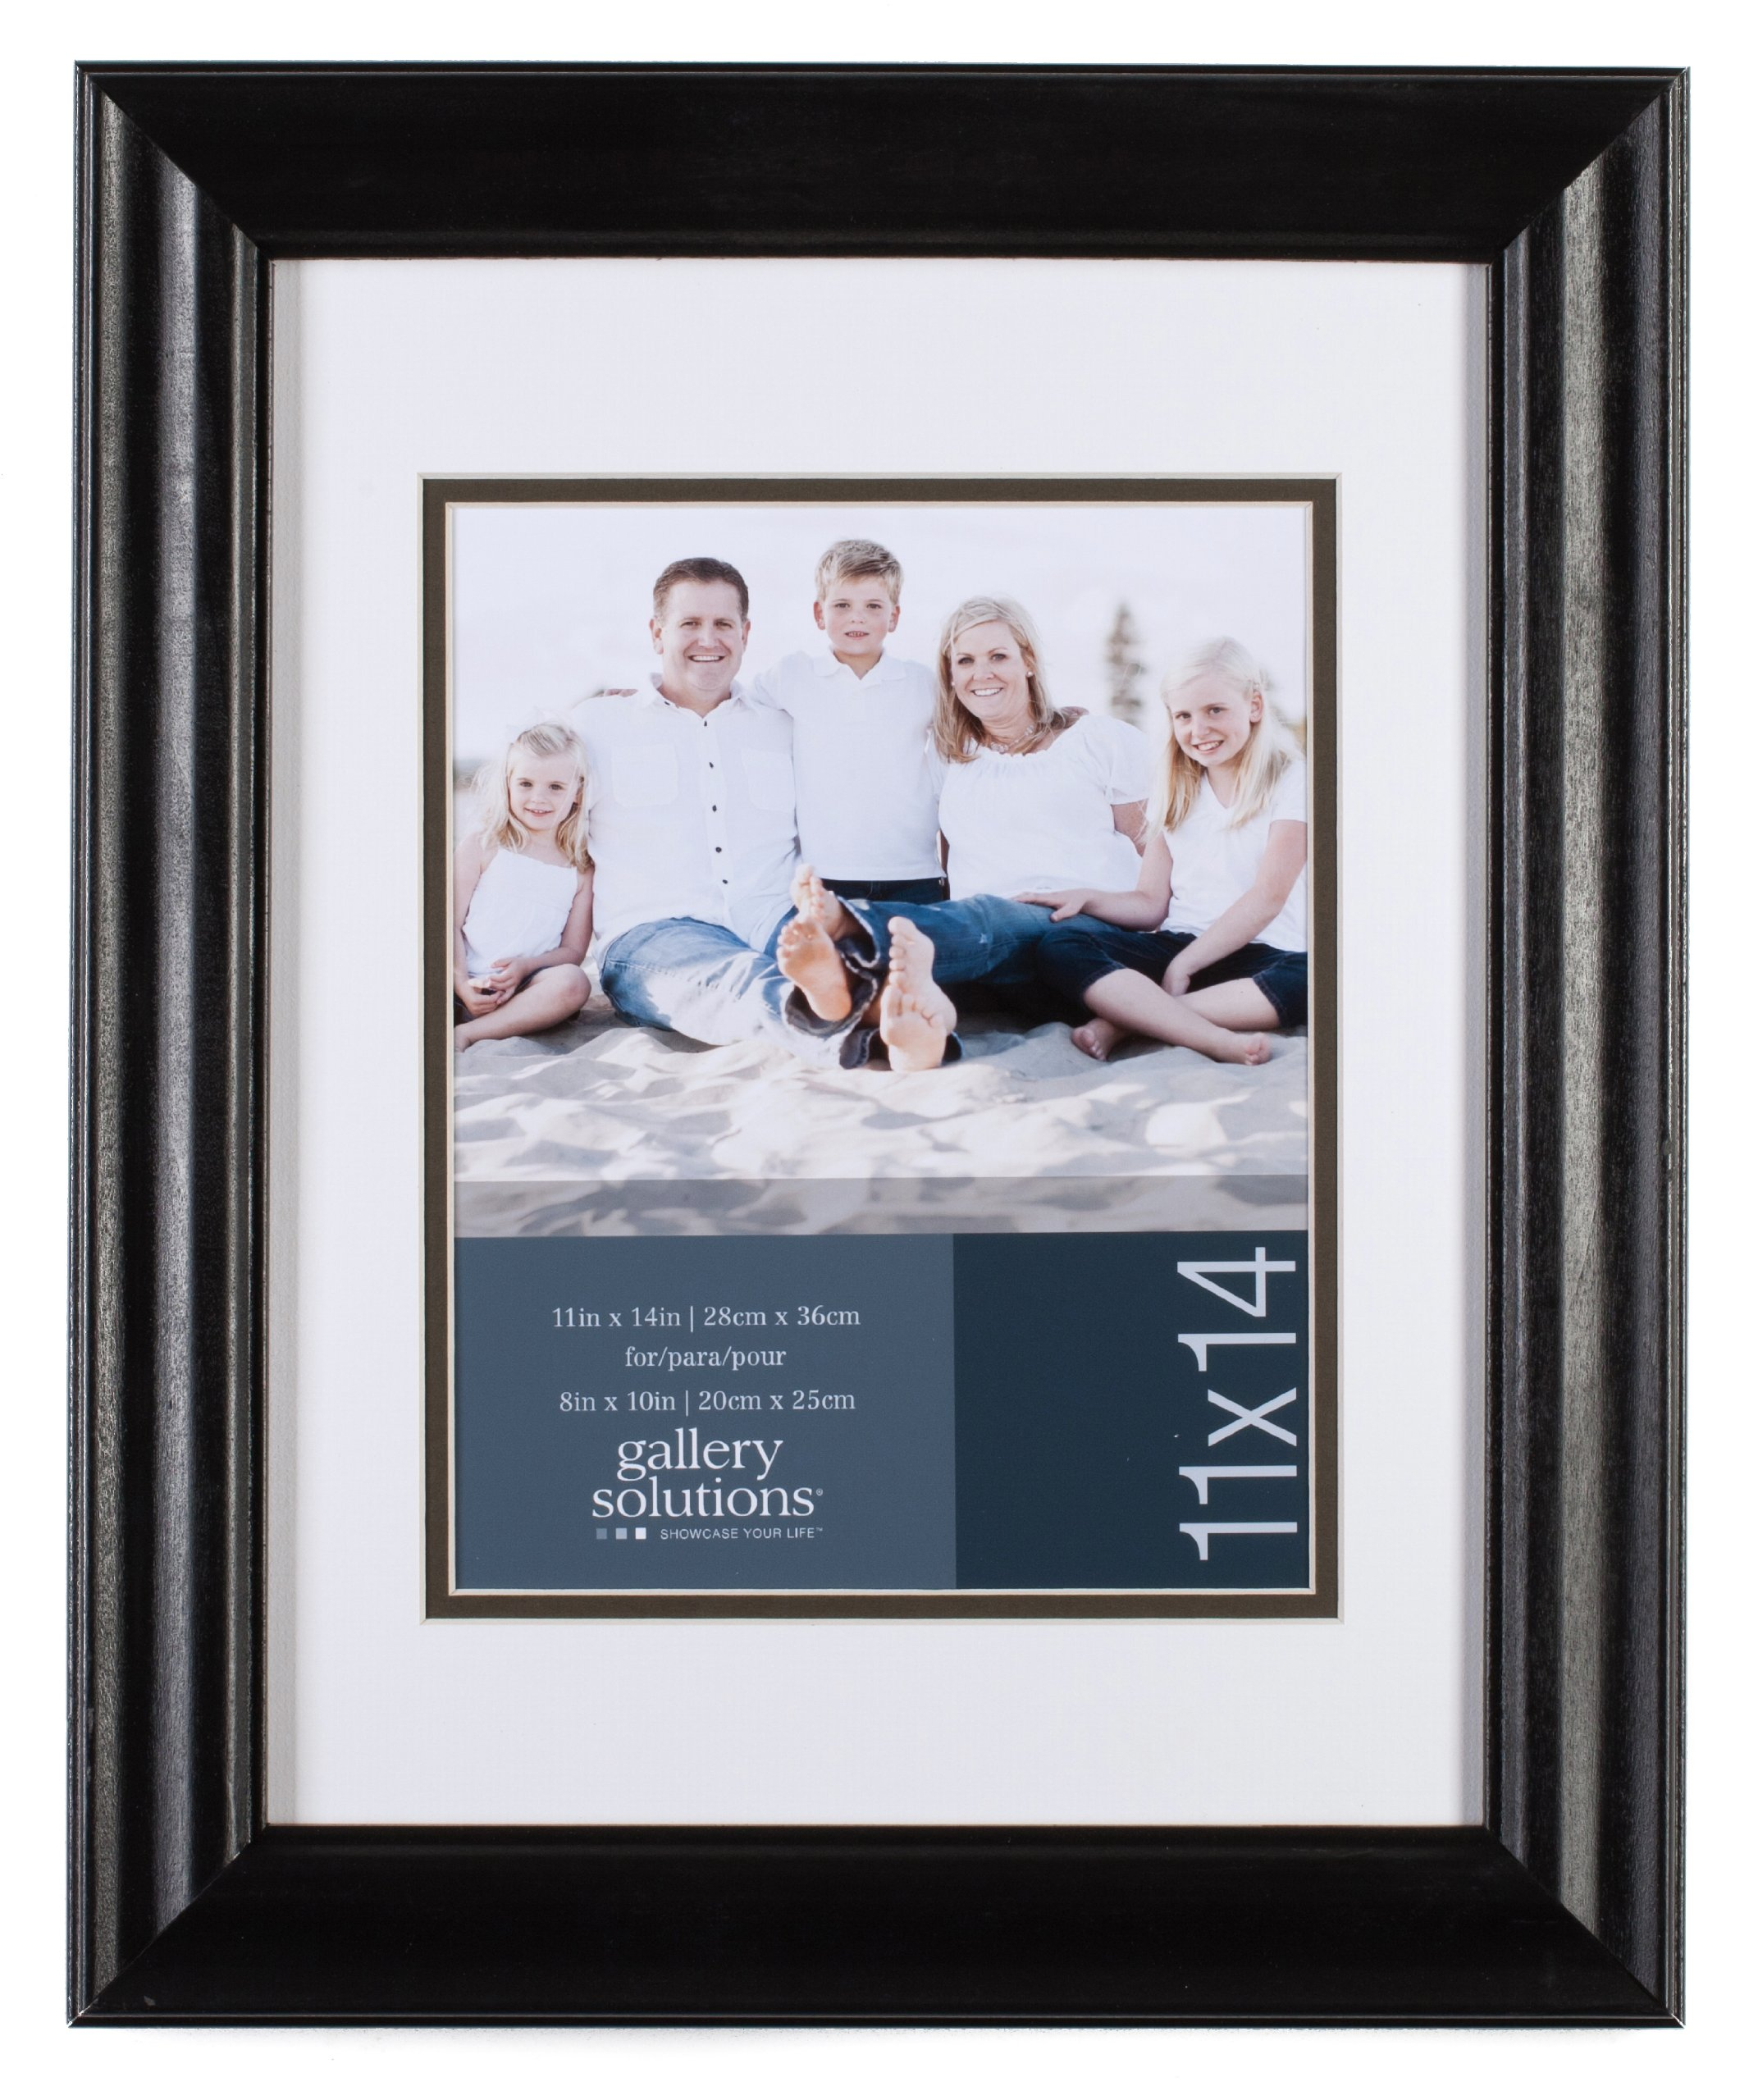 GALLERY SOLUTIONS 11x14 Black Satin Scoop Wall Frame with White Mat For 8x10 Image